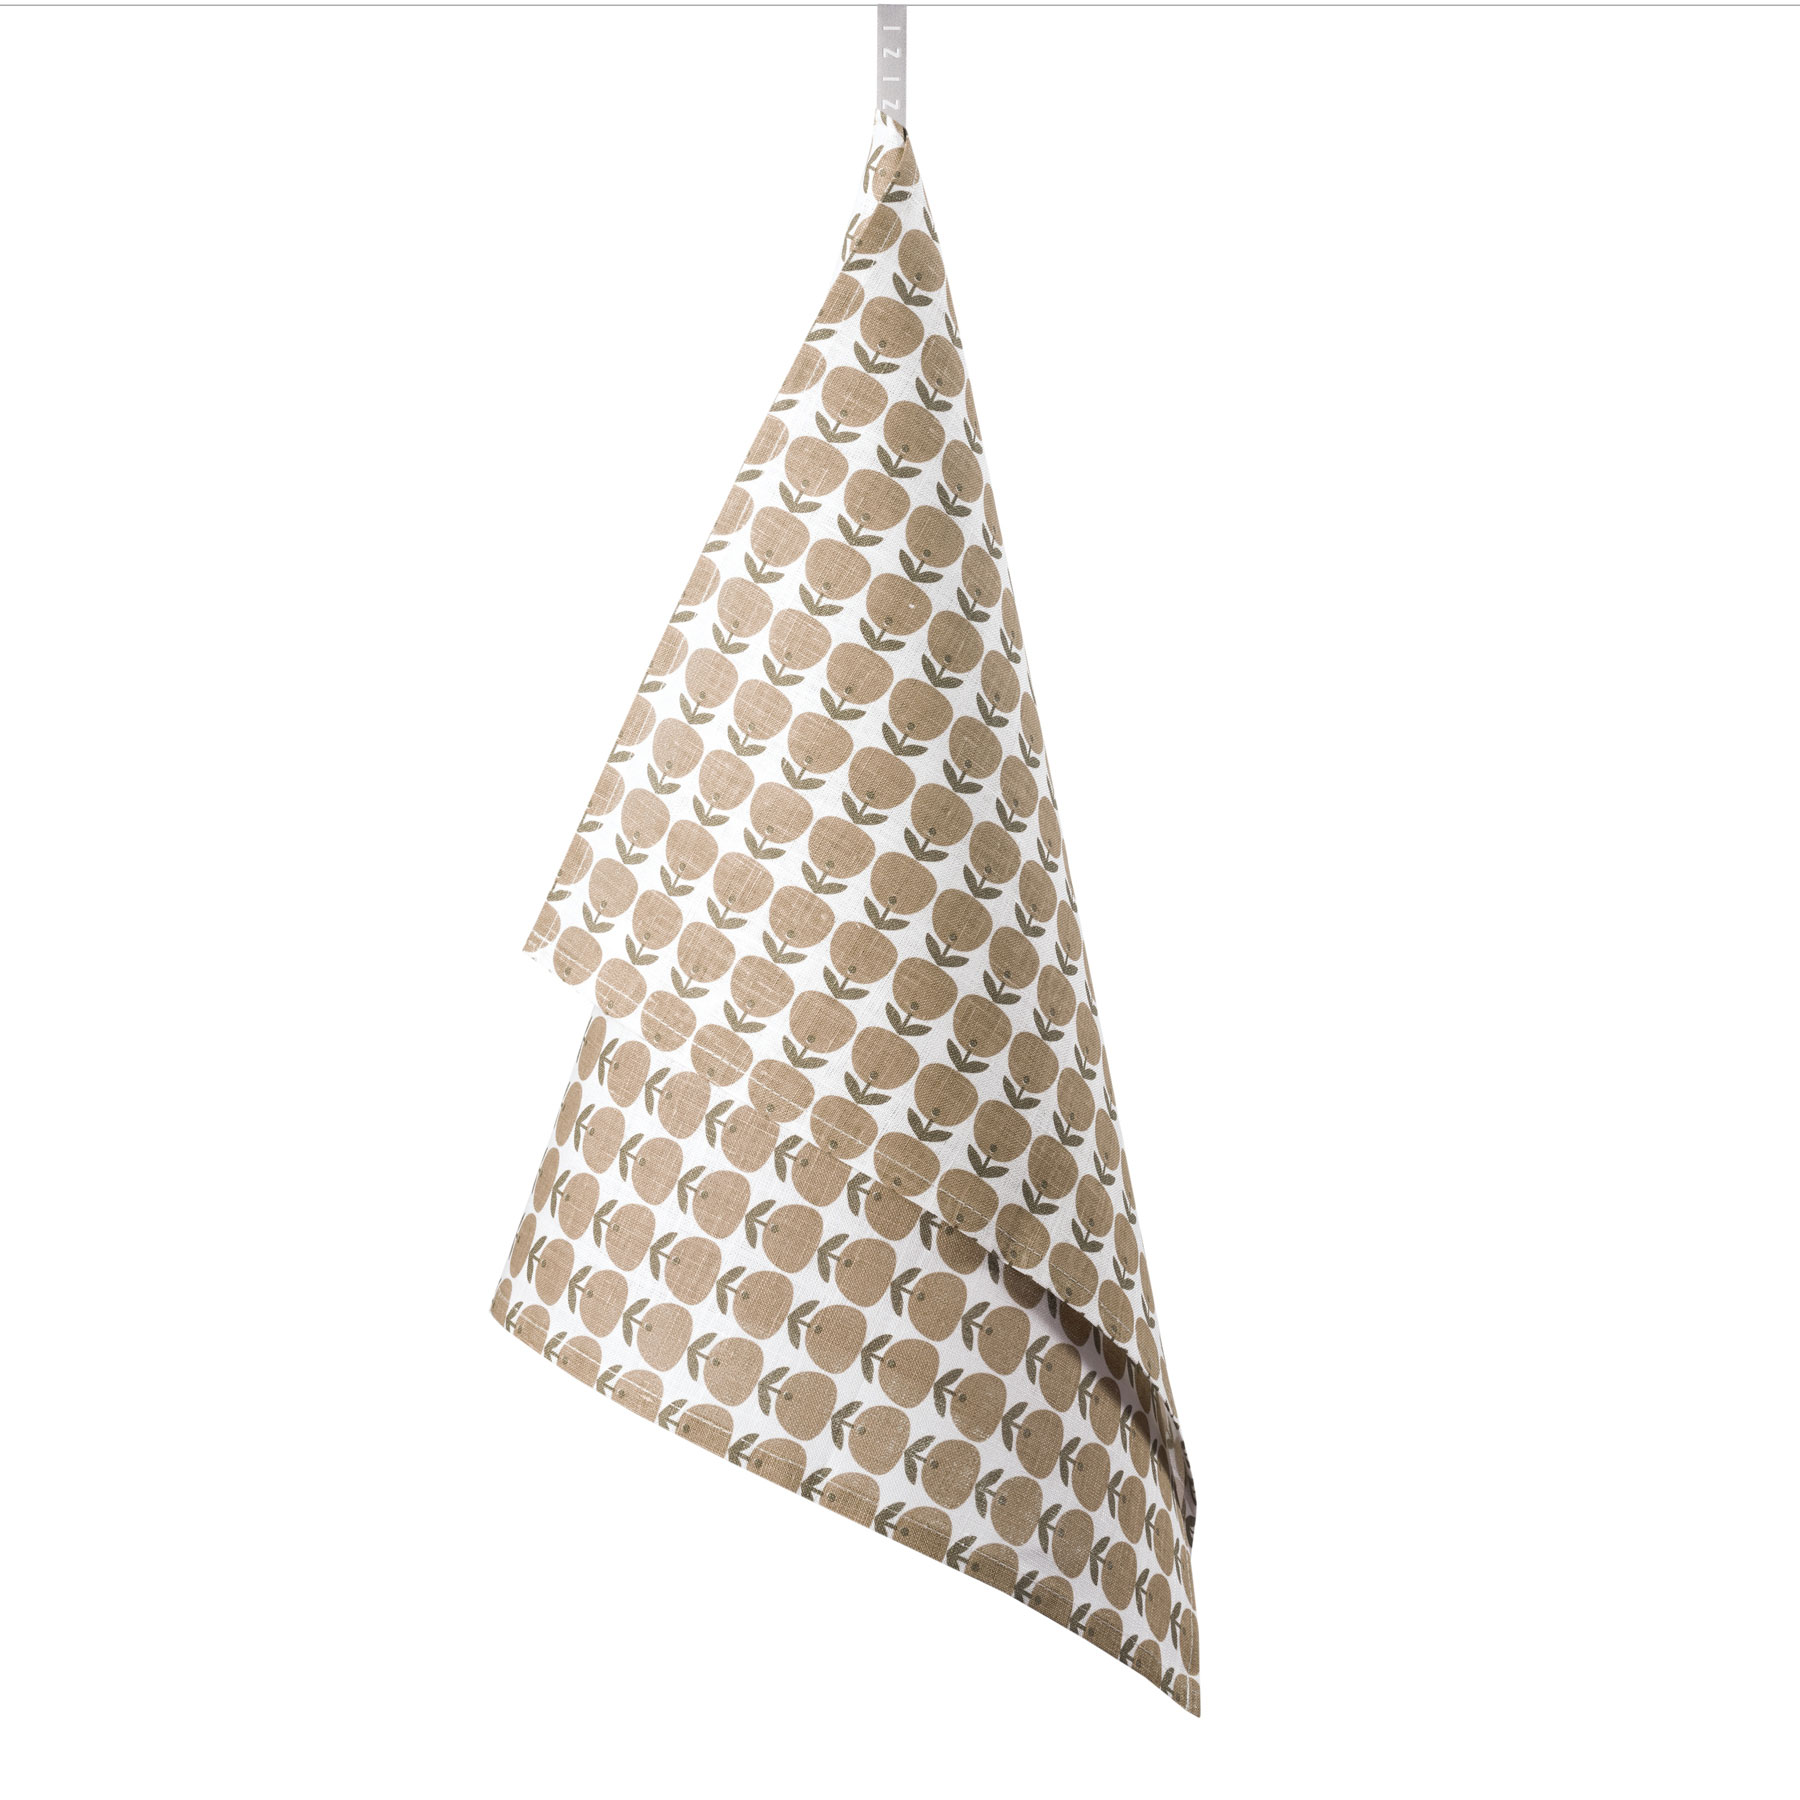 TEA TOWEL APPLE <br />brown